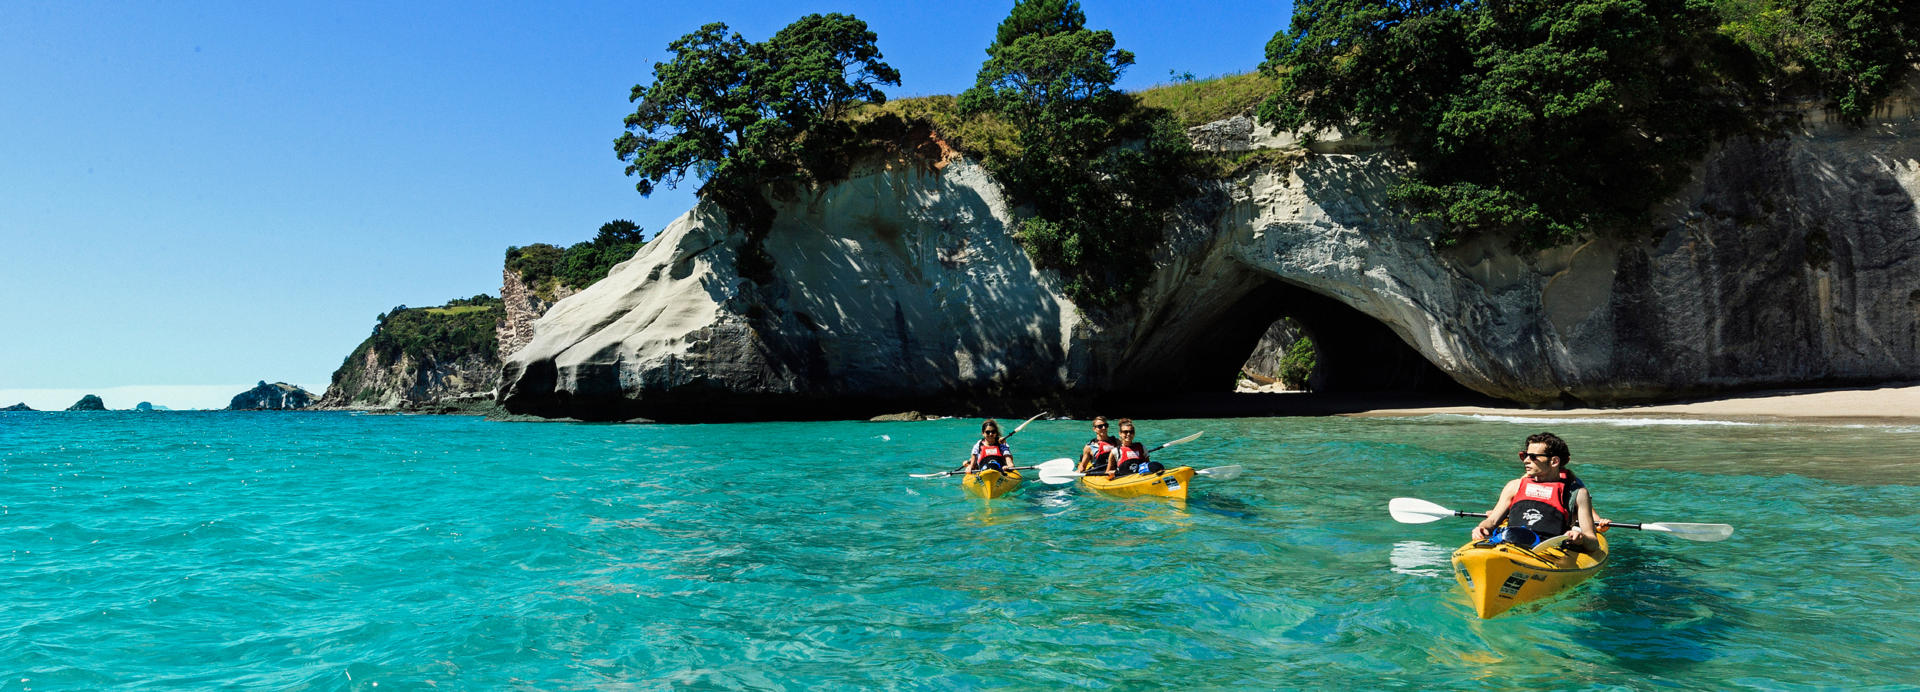 Waikato Cathedral Cove 01 P